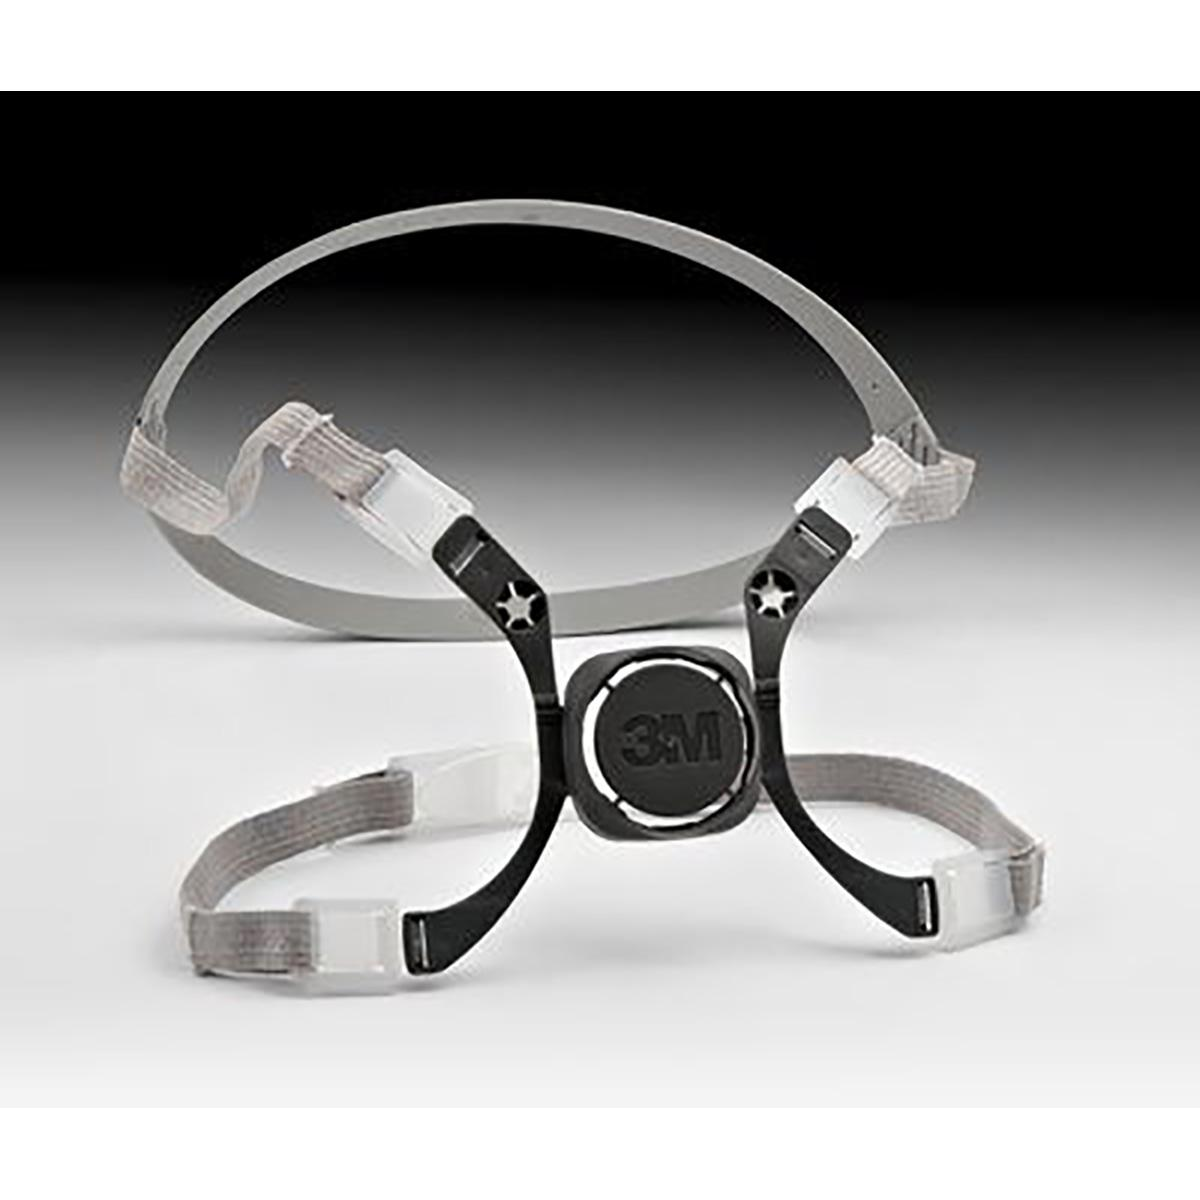 3M Head Harness Assembly 6281, Respiratory Protection Replacement Part